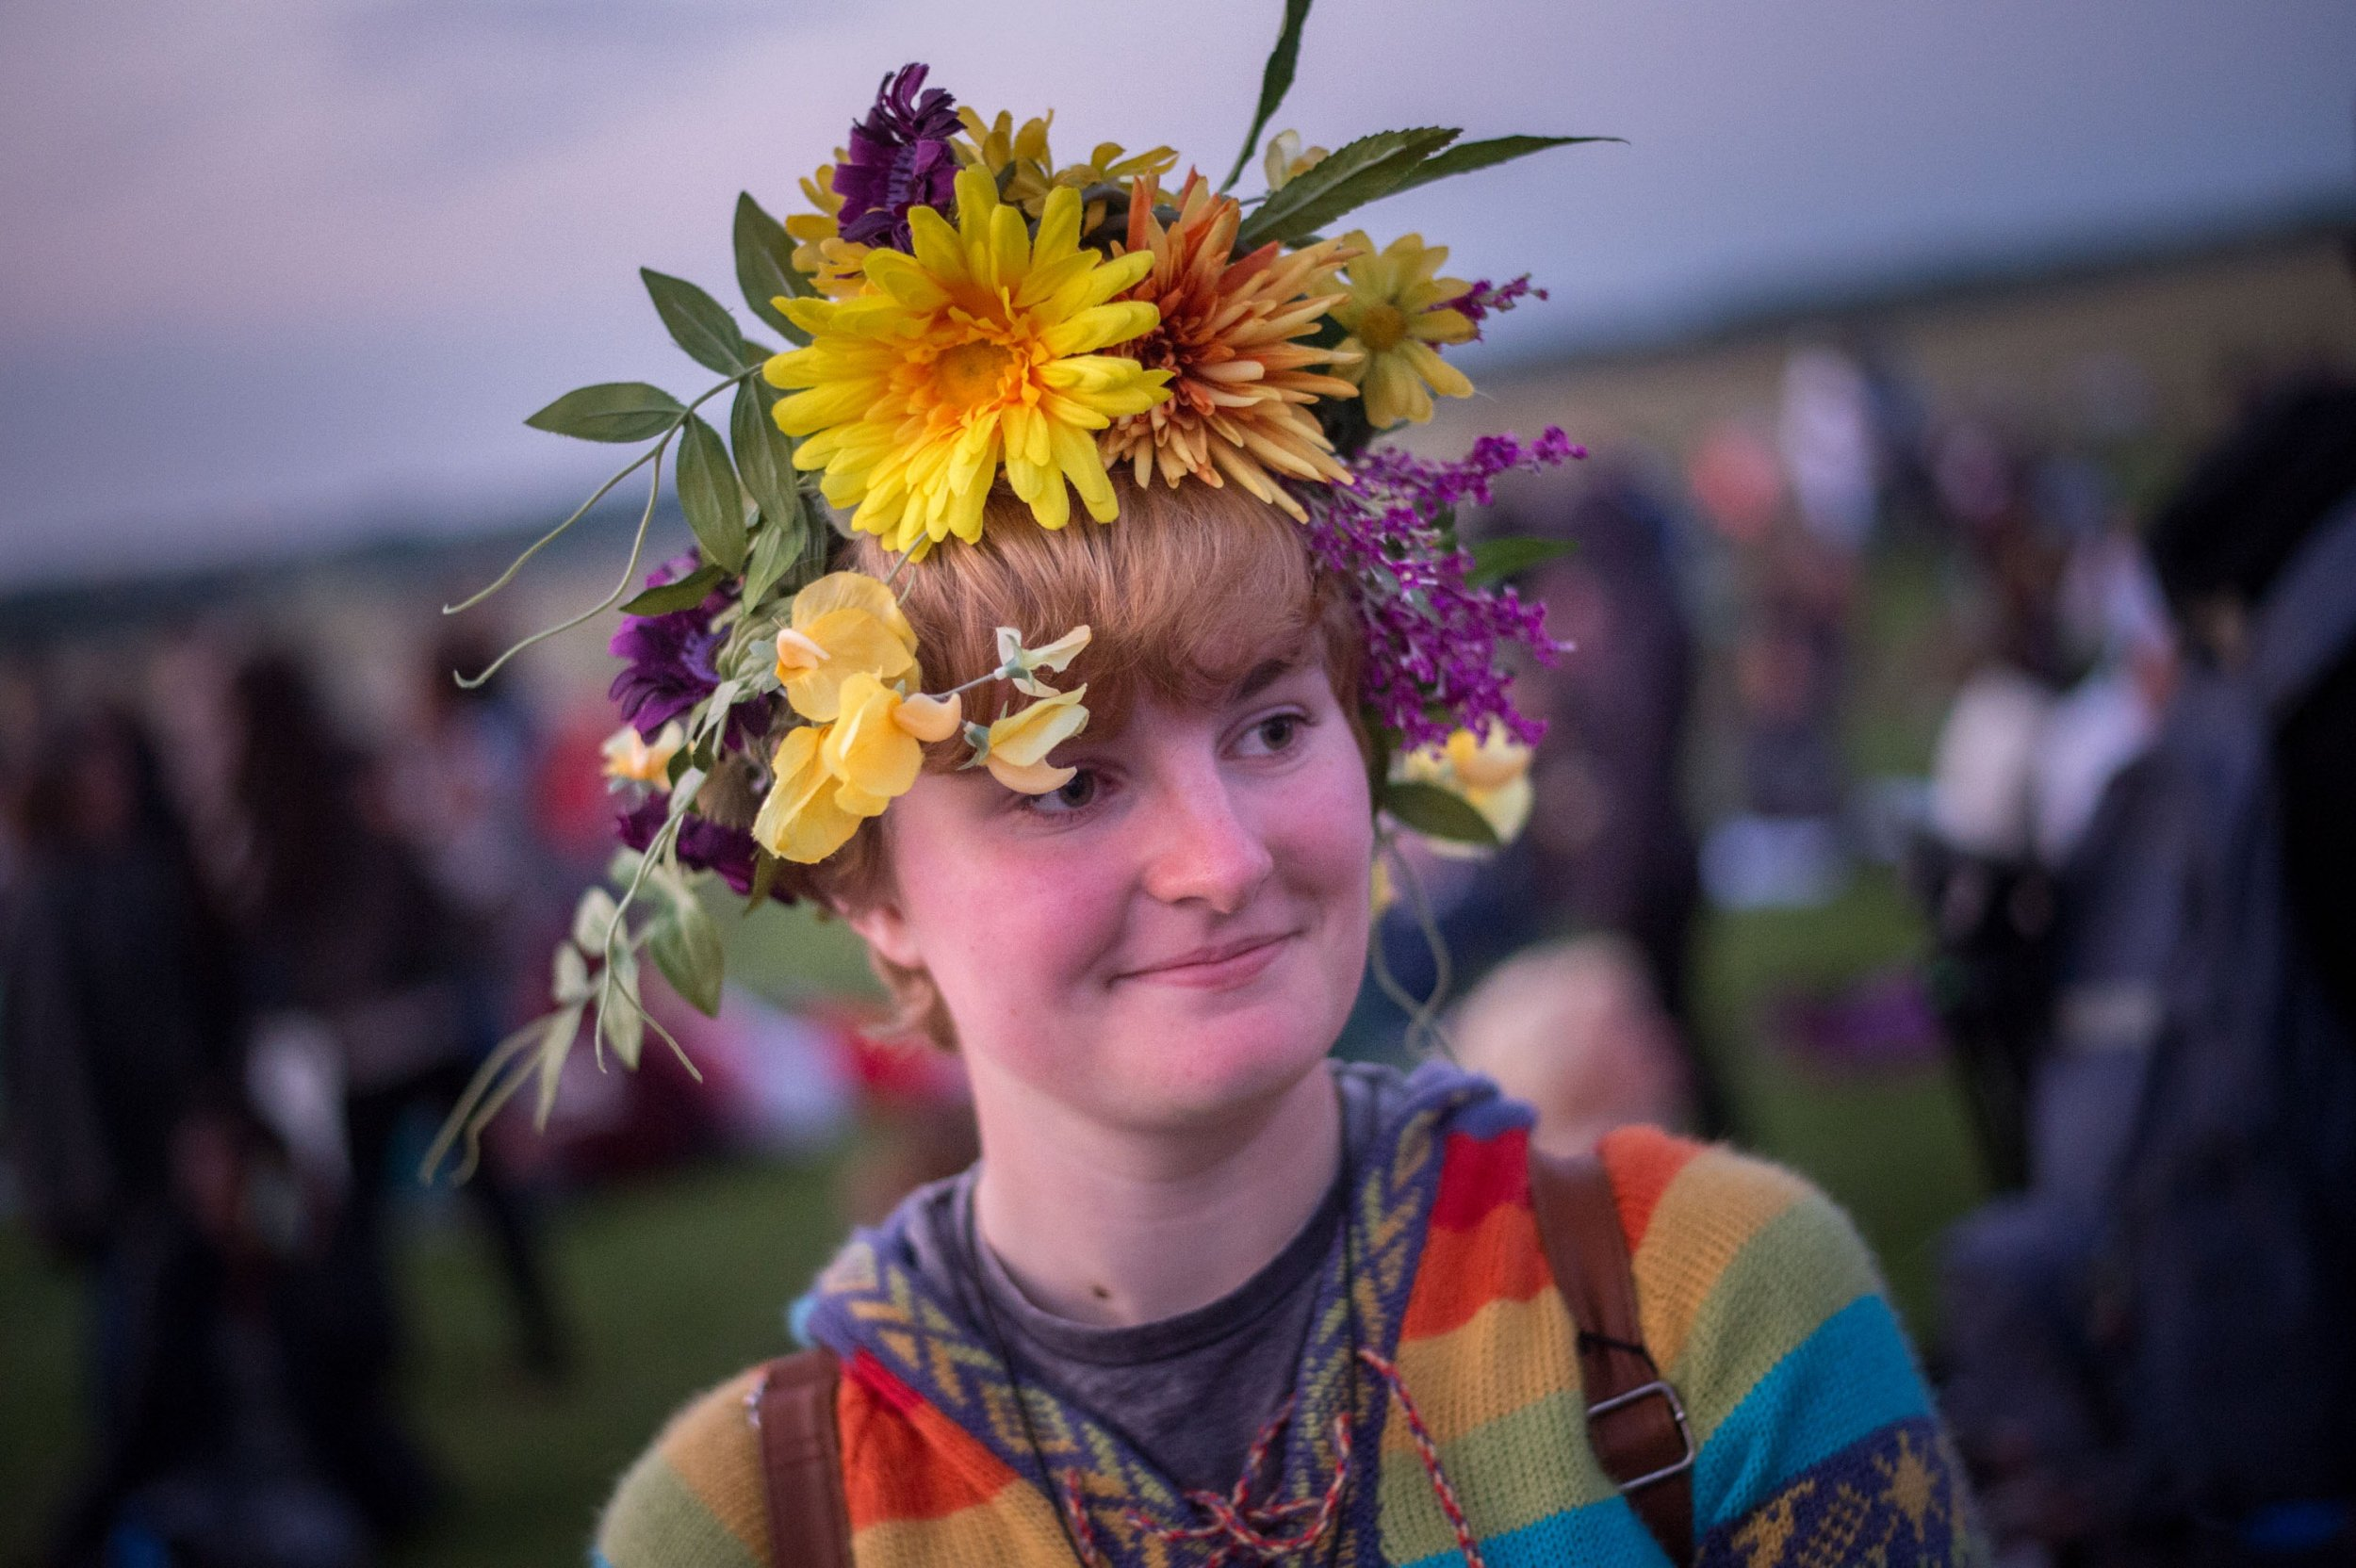 WILTSHIRE, ENGLAND - JUNE 20: People prepare for the summer solstice dawn celebrations as druids, pagans and revellers gathered the night before the Summer Solstice sunrise at Stonehenge on June 20, 2014 in Wiltshire, England. A sunny forecast brought thousands of revellers to the 5,000 year old stone circle in Wiltshire to see the sunrise on the Summer Solstice dawn. The solstice sunrise marks the longest day of the year in the Northern Hemisphere. (Photo by Tim Ireland/Getty Images)